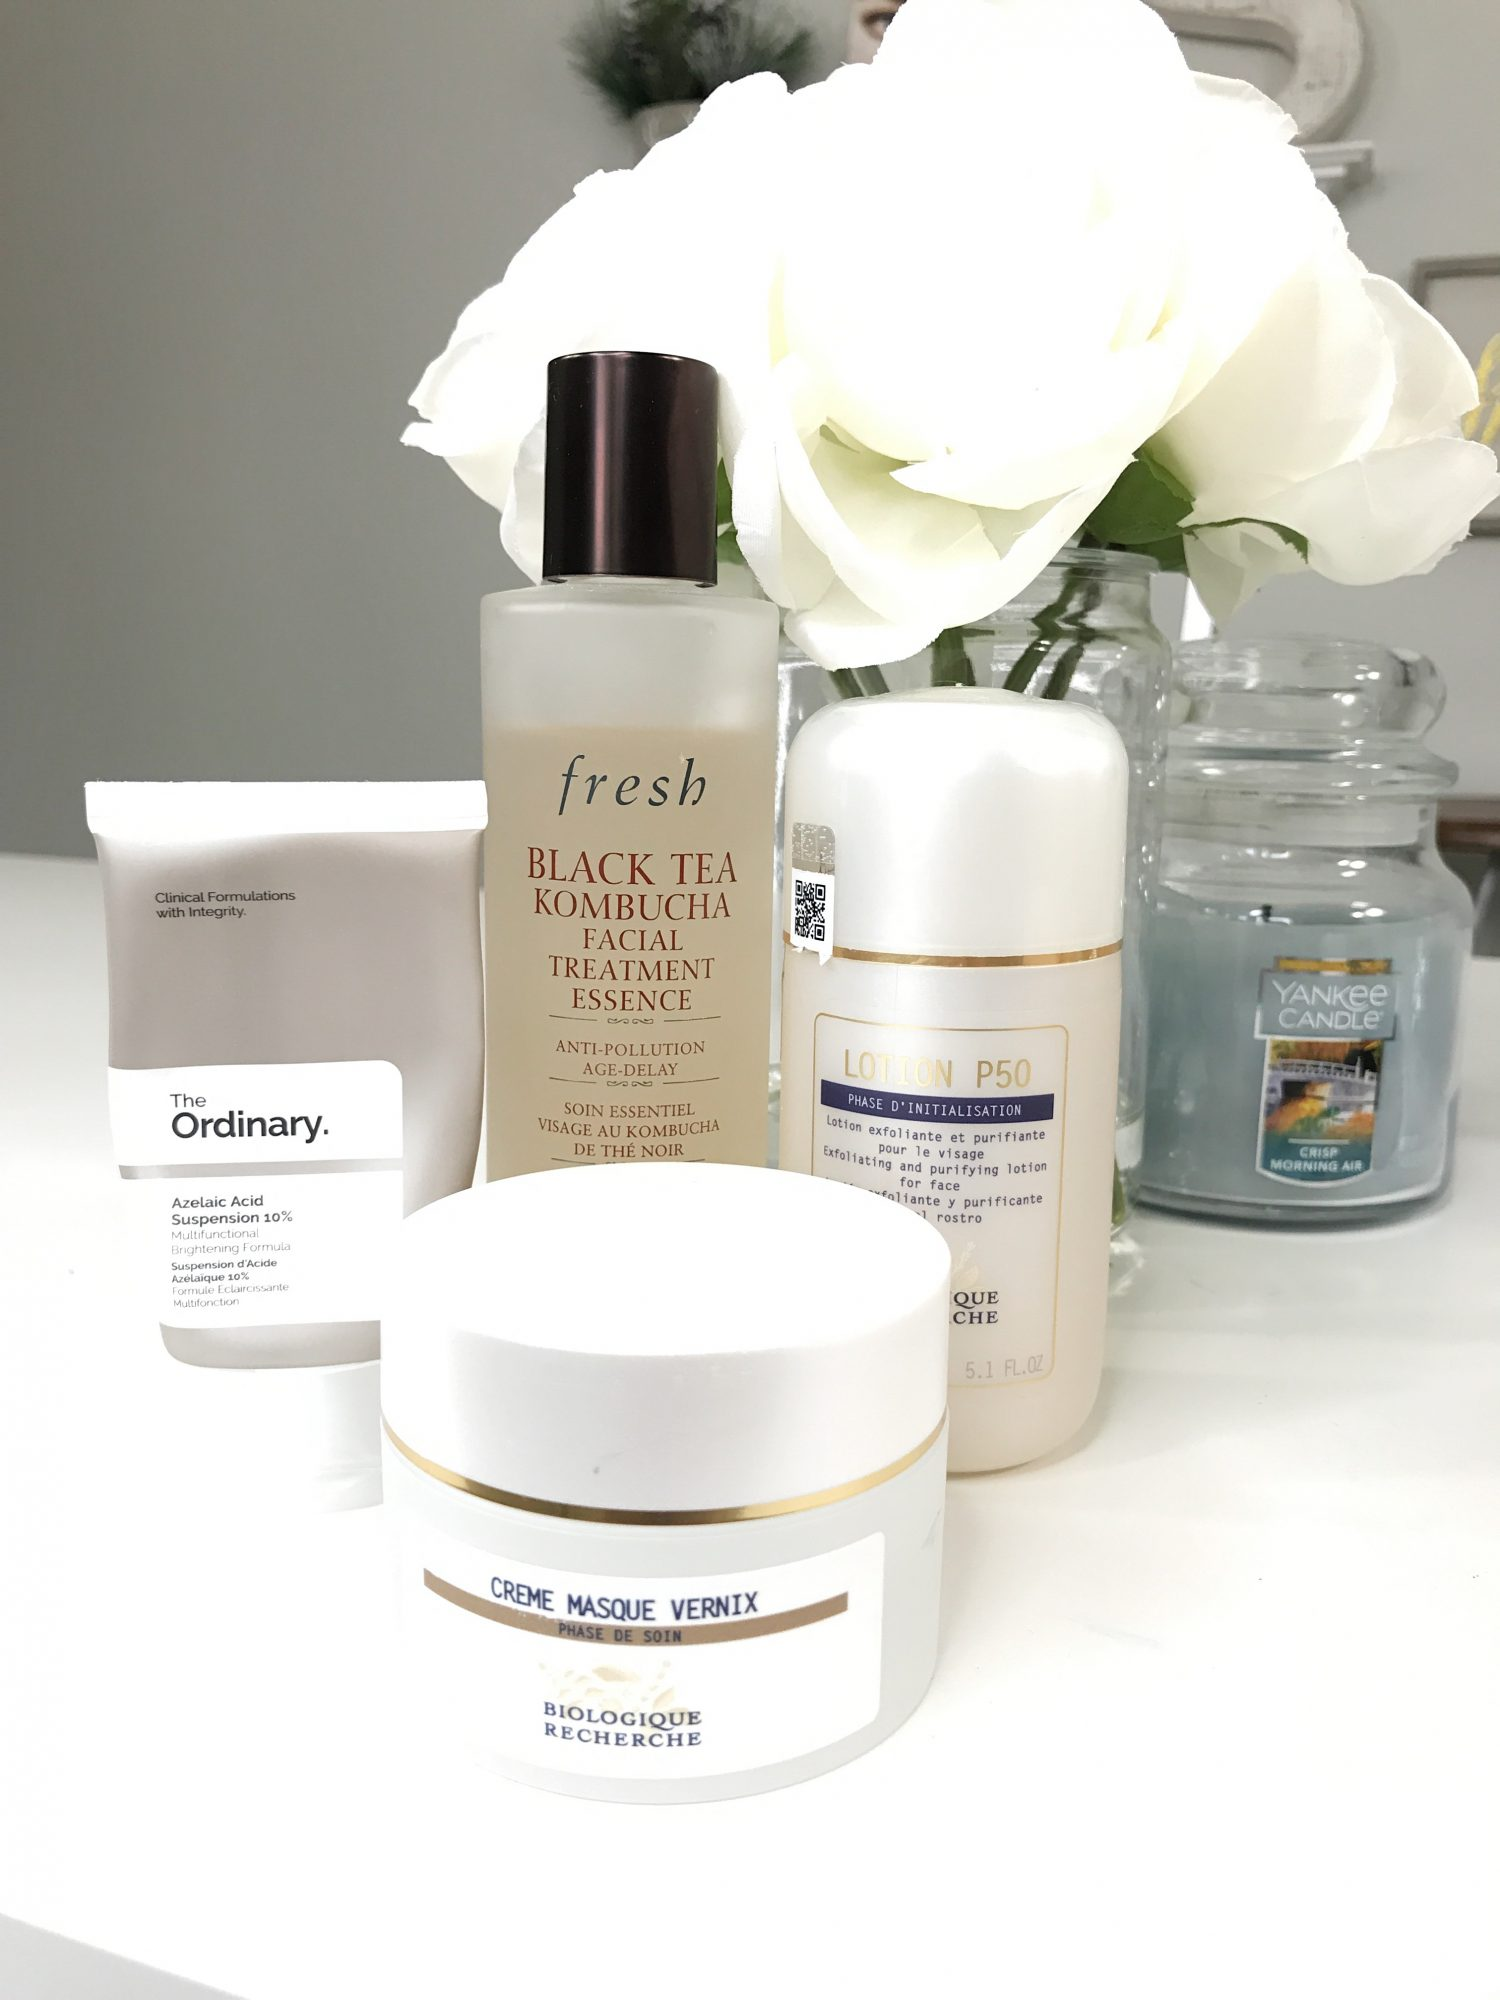 First Trimester Beauty Essentials | First Trimester Beauty Must Haves | How To Manage Breakouts During Pregnancy | The Ordinary Azelaic Acid, Fresh Black Tea Kombucha Essence, Biologique Recherche Creme Masque Vernix